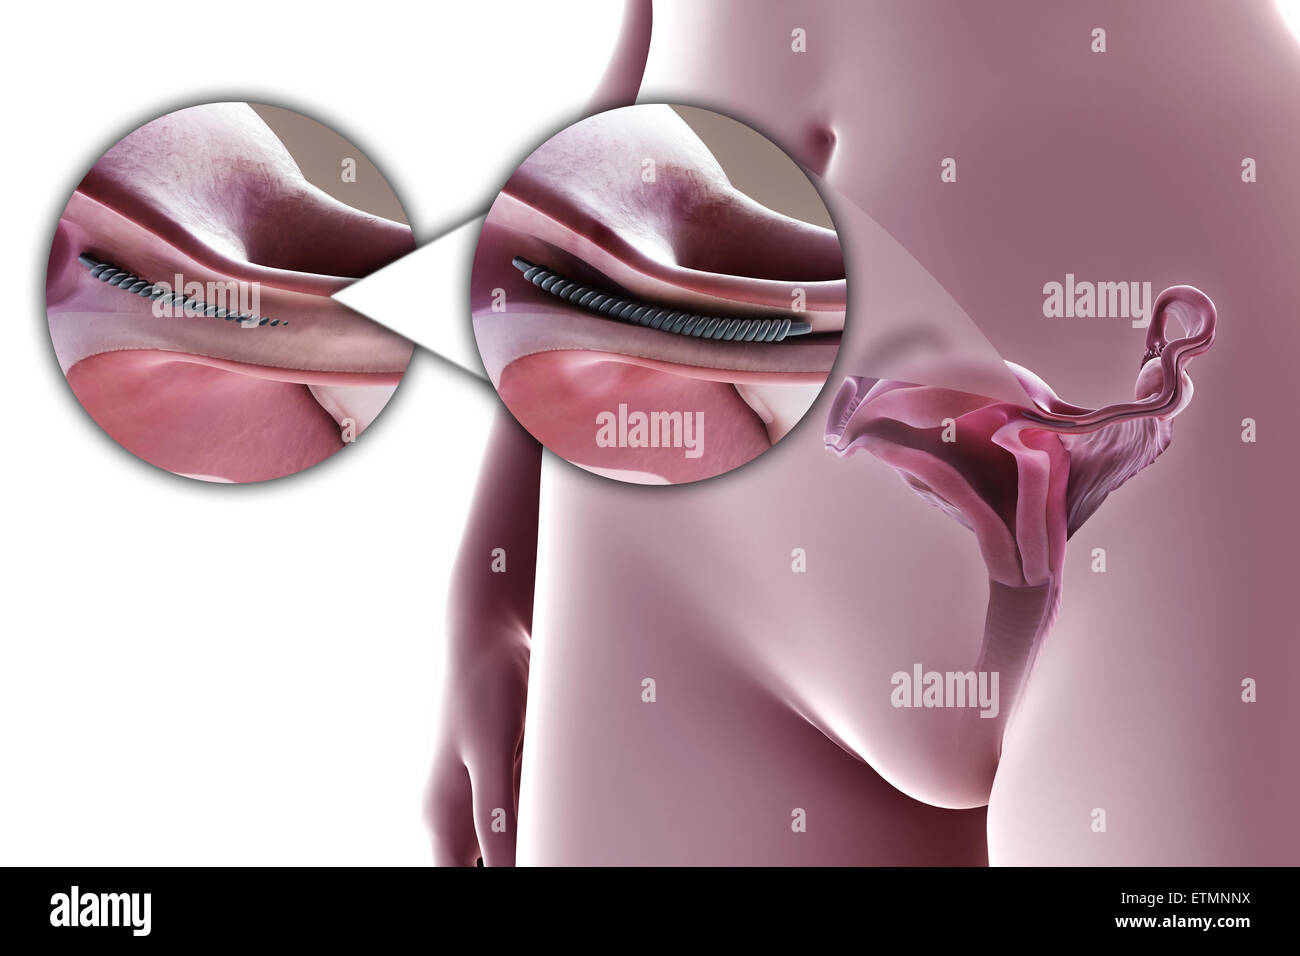 Illustration Showing Tubal Ligation Of The Fallopian Tube By Method